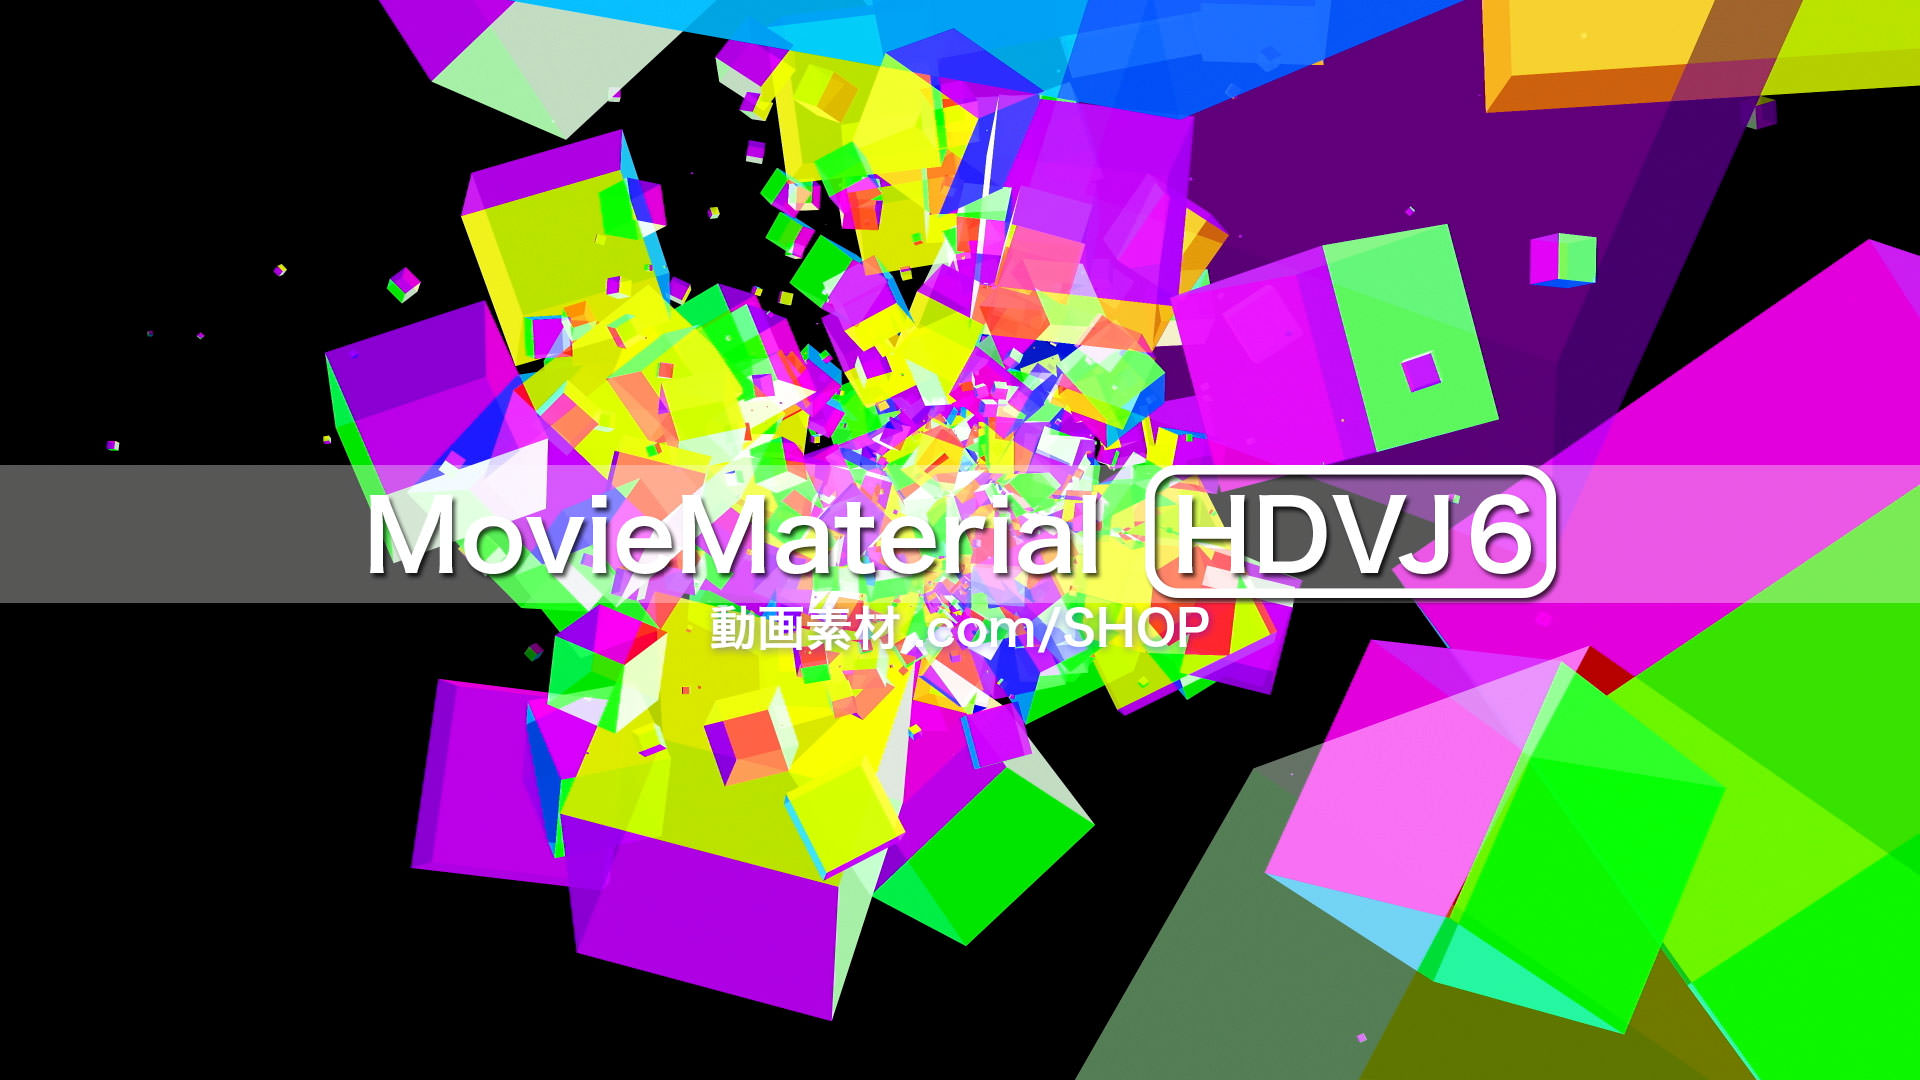 【MovieMaterial HDVJ6】フルハイビジョン動画素材集26